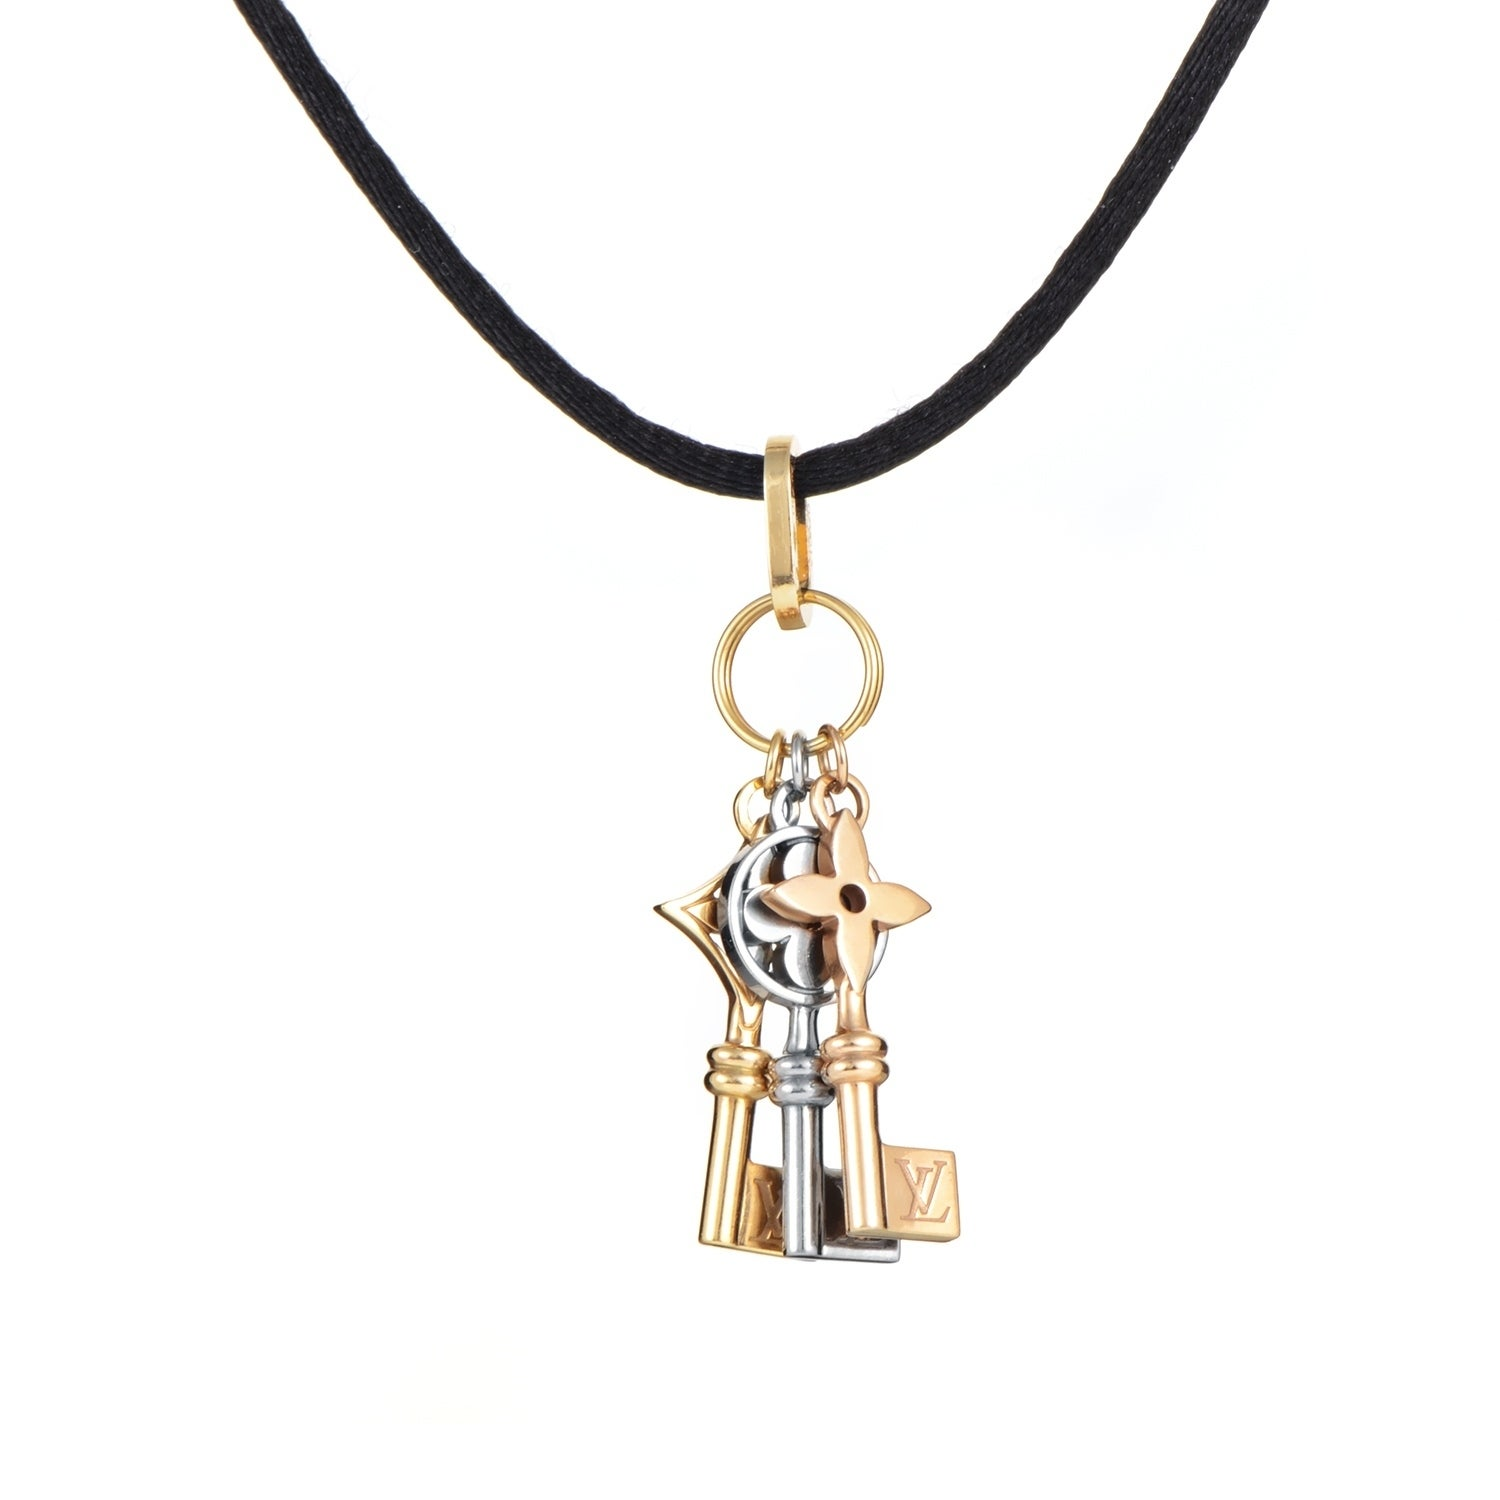 Louis vuitton idylle blossom womens multi tone gold keys pendant louis vuitton idylle blossom womens multi tone gold keys pendant necklace free shipping today overstock 27415337 mozeypictures Choice Image